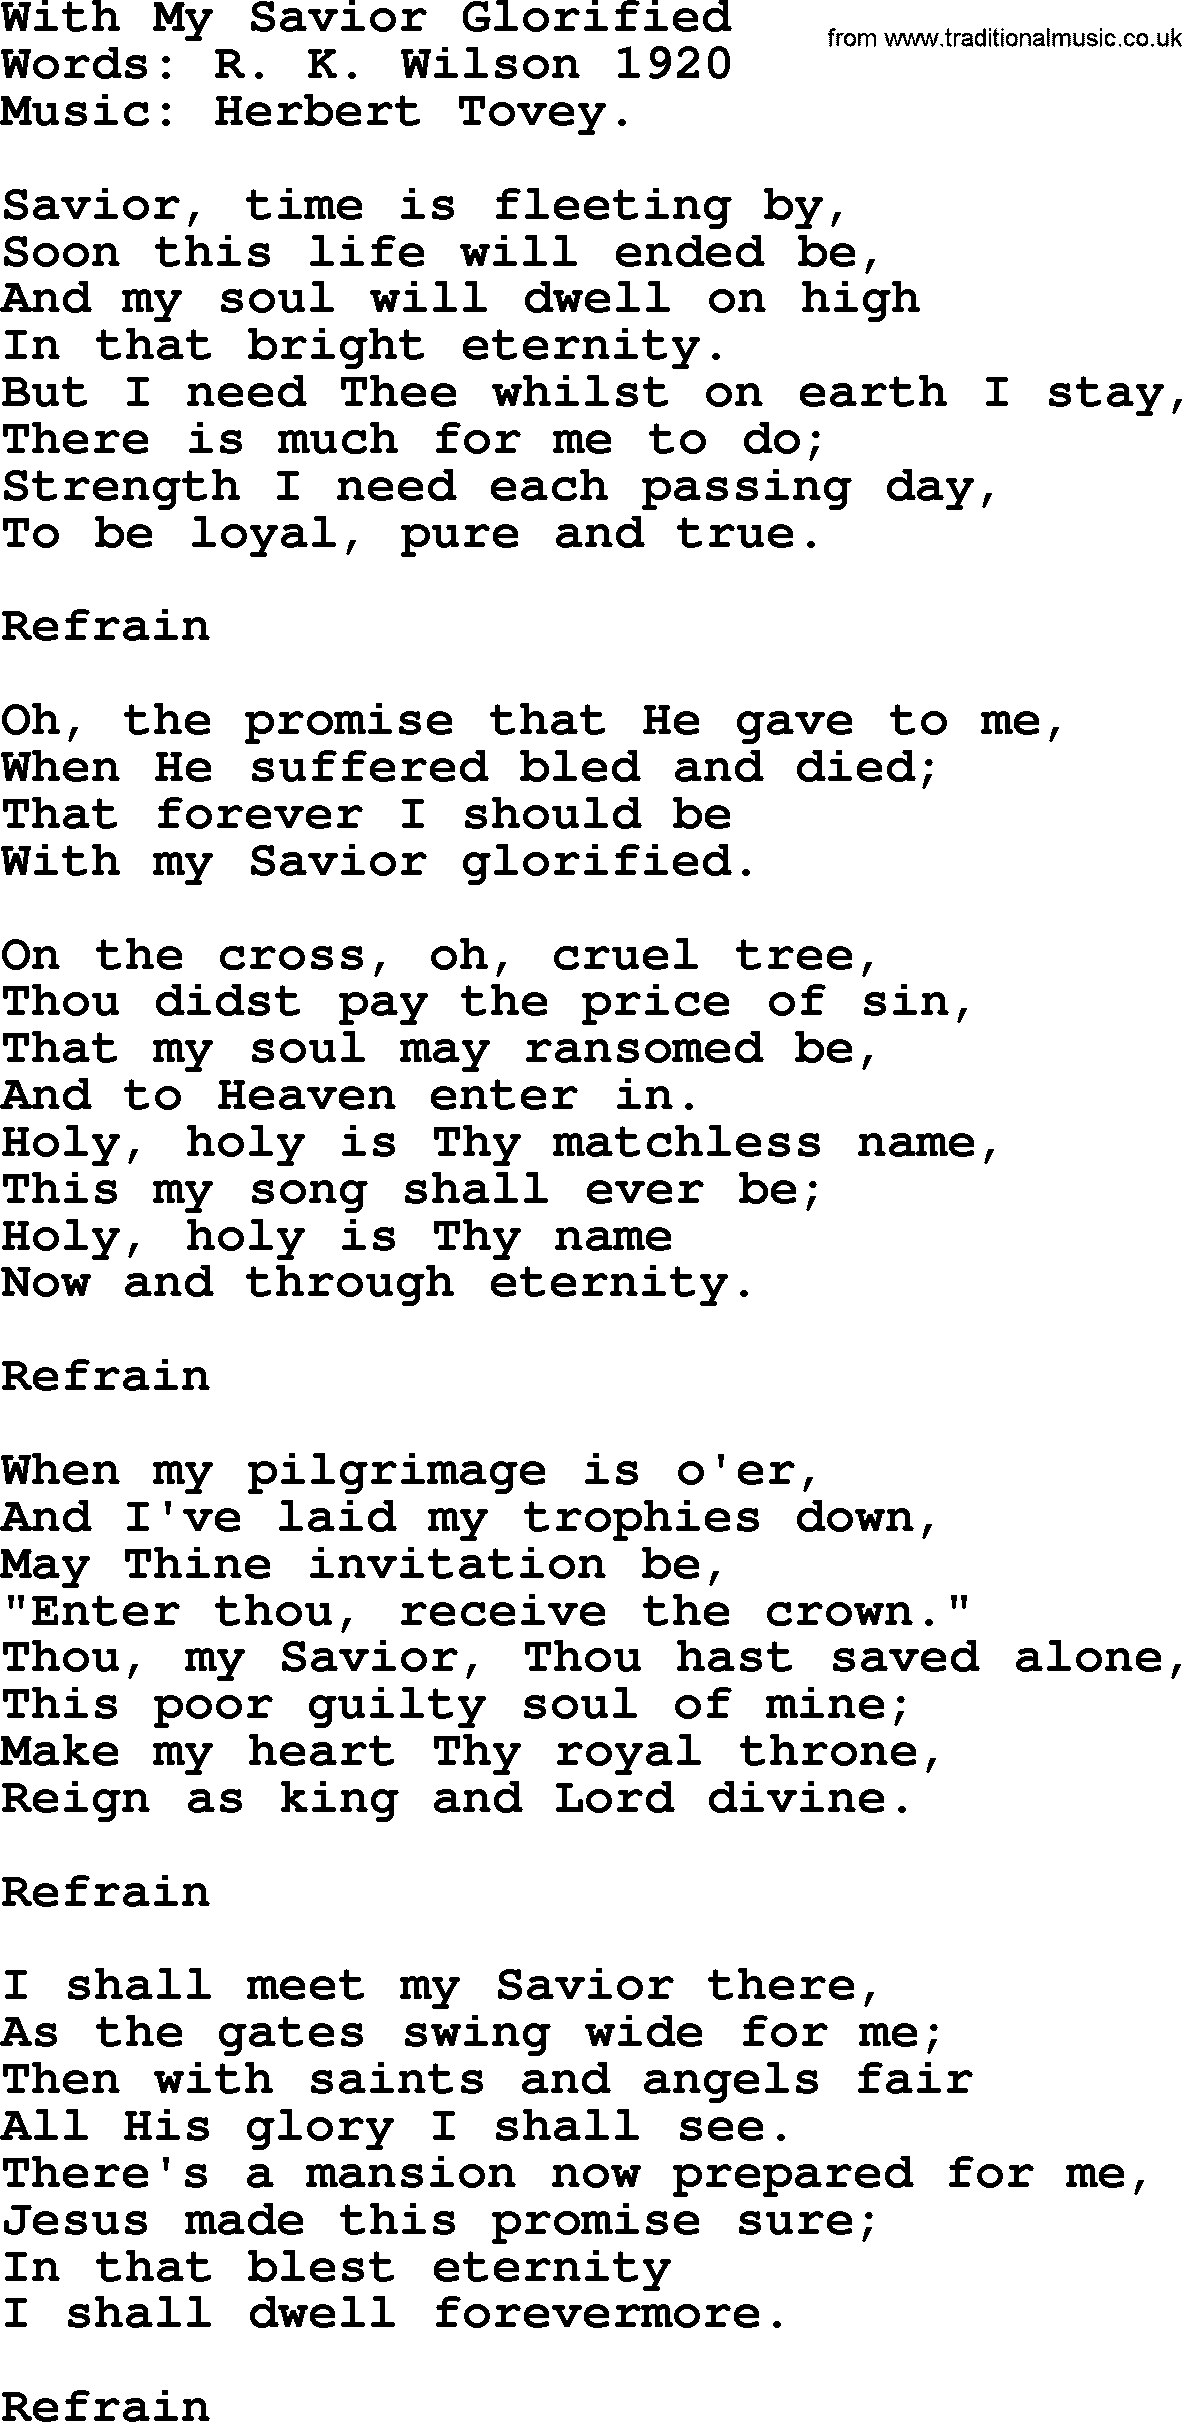 Hymns and songs about heaven with my savior glorified lyrics and pdf songs and hymns about heaven with my savior glorified lyrics with pdf stopboris Images